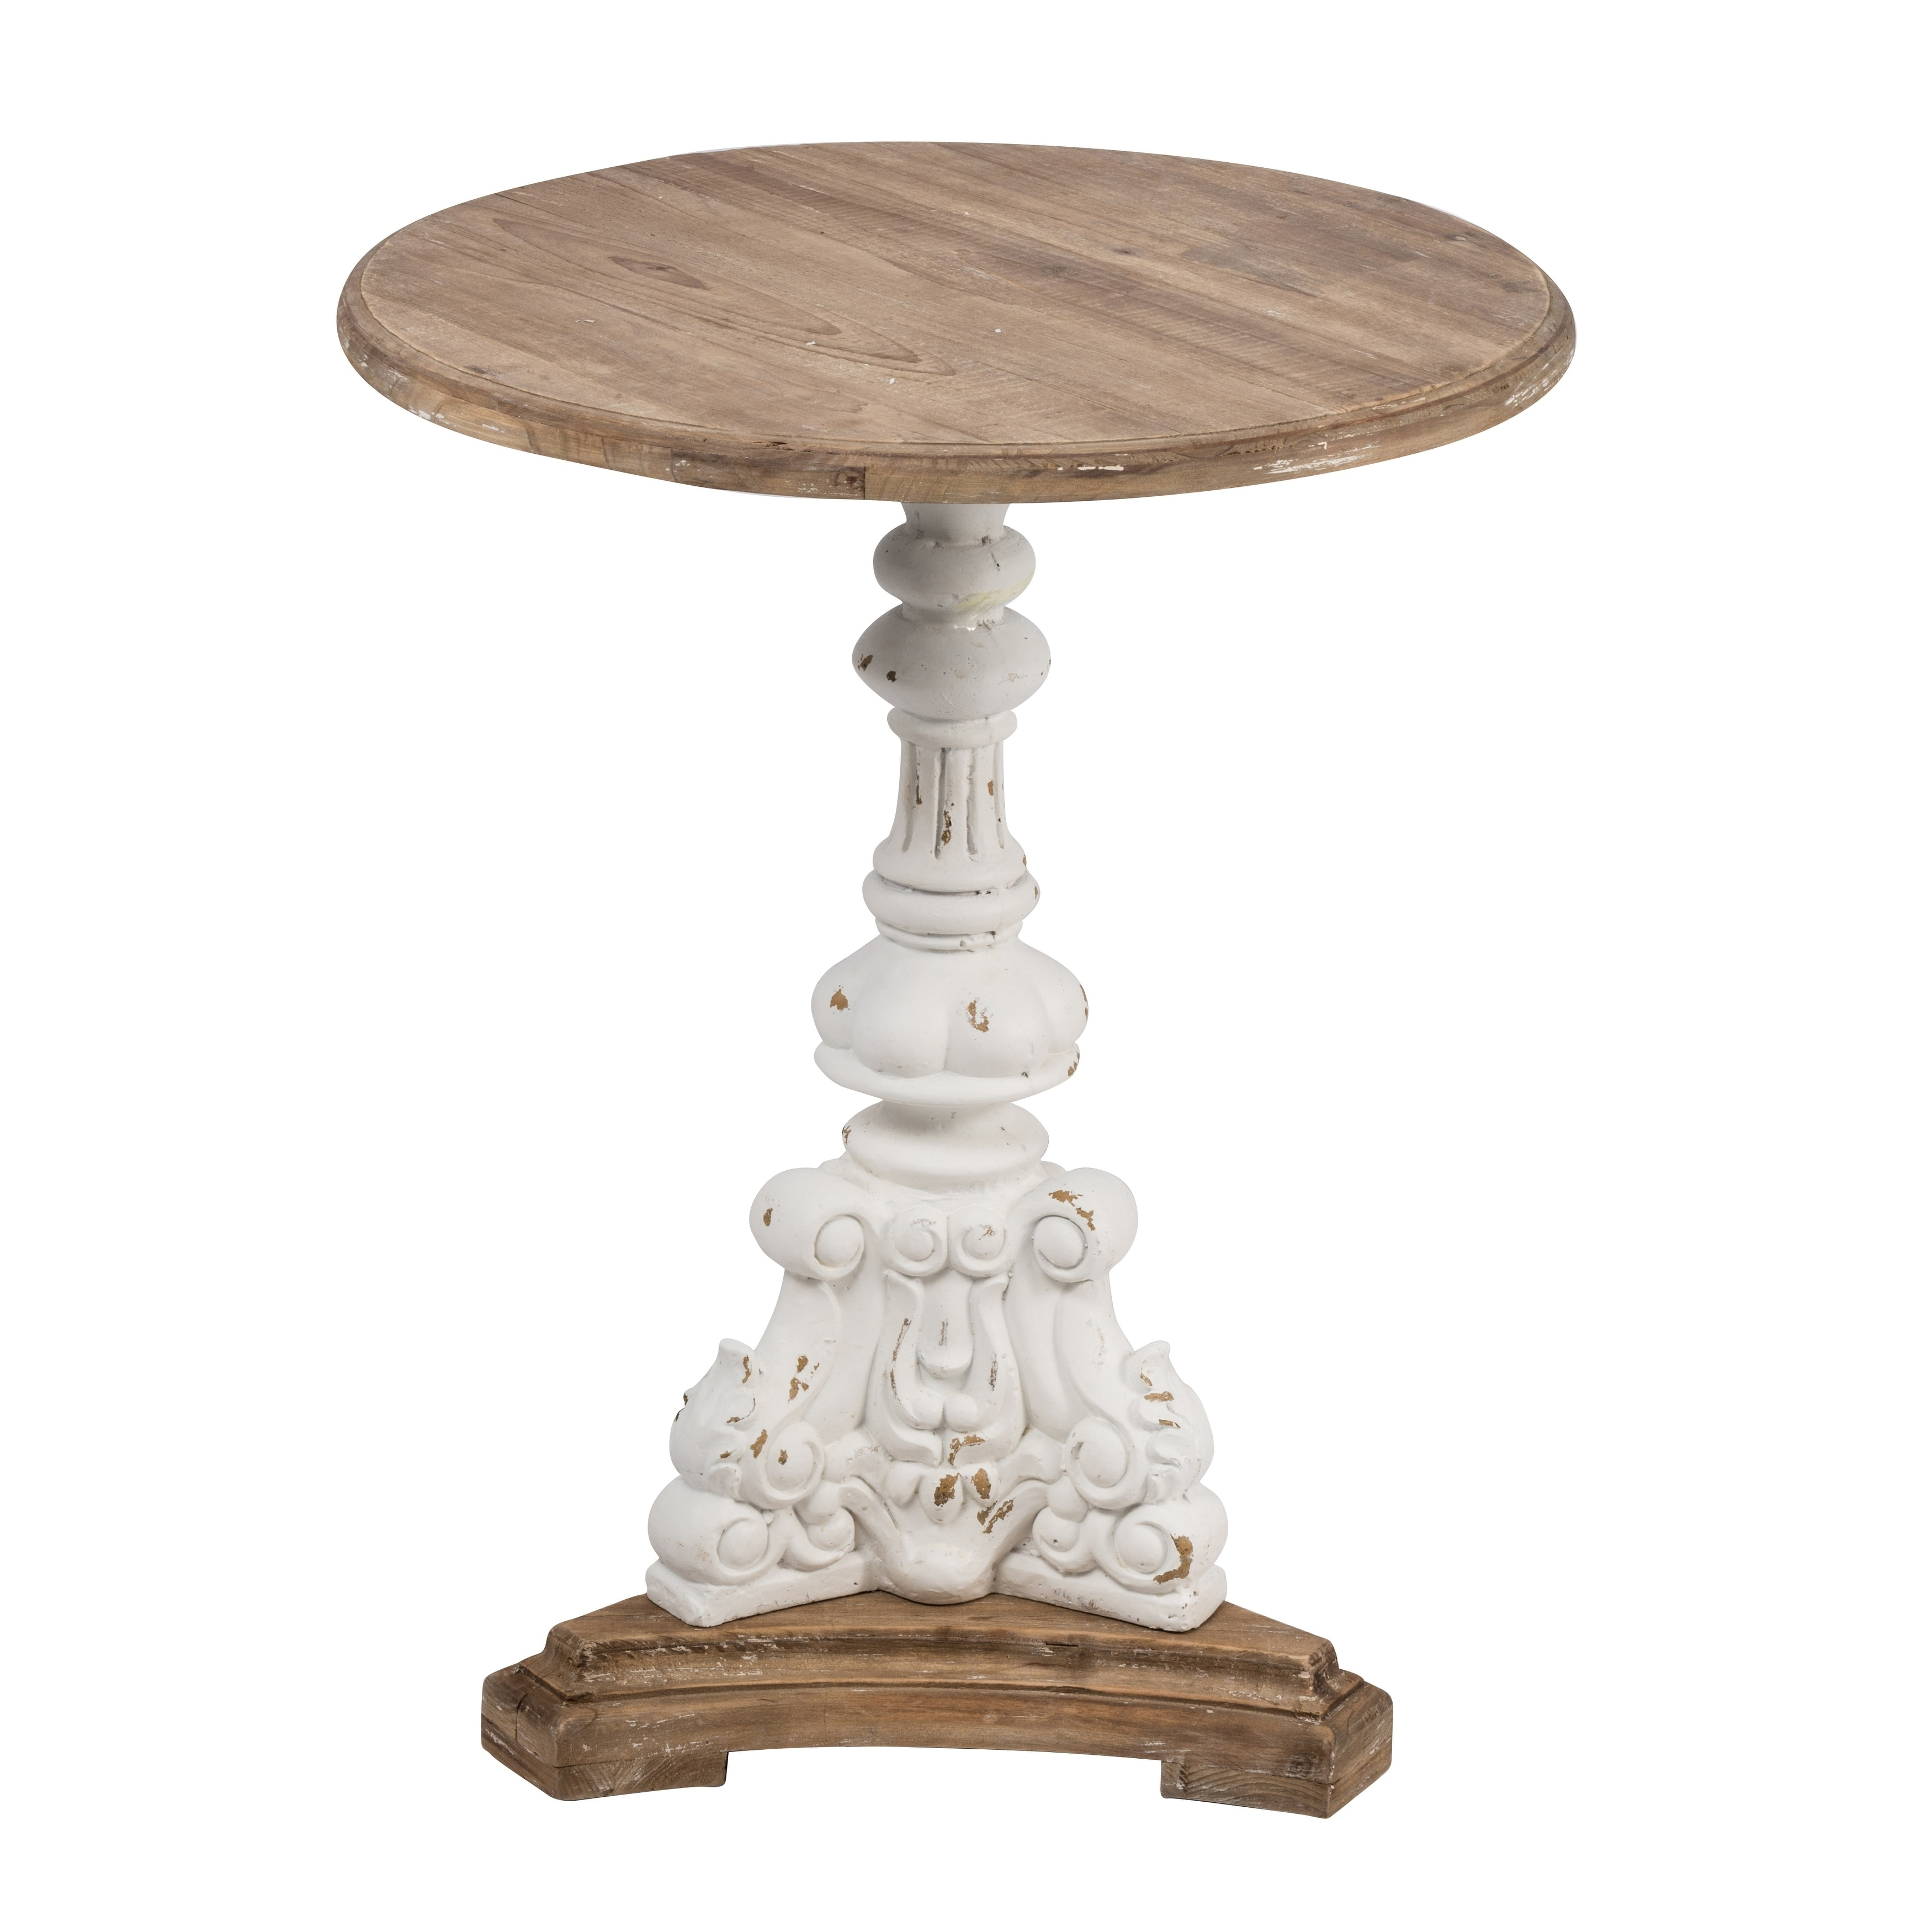 Antique White 26-inch Round Side Table - Overstock - 29073054